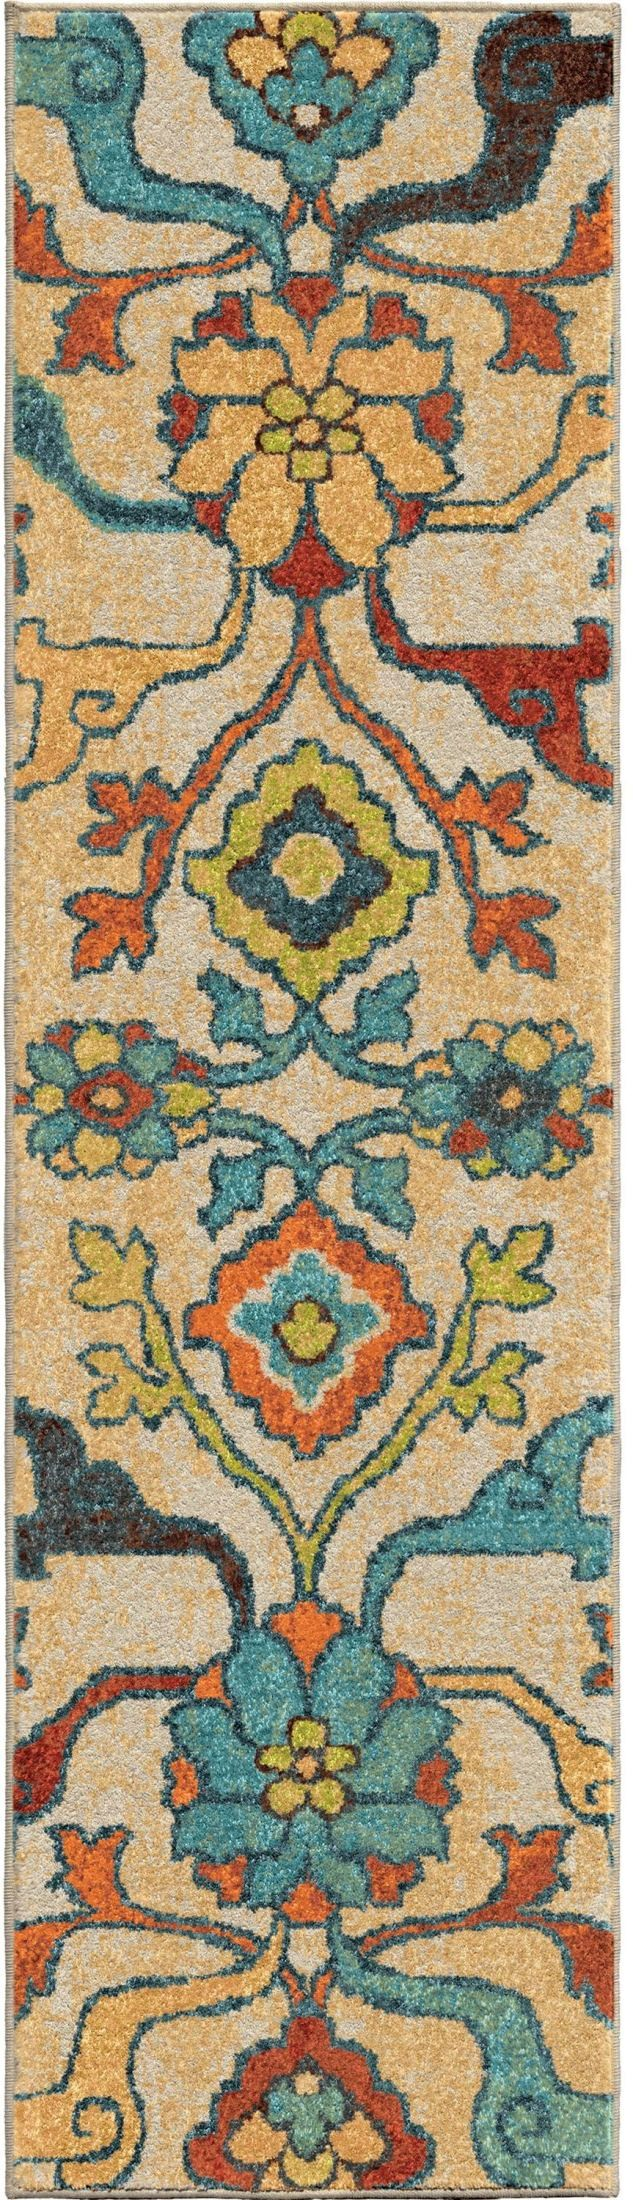 Orian rugs bright color floral tibet multi runner rug for Bright floral area rugs